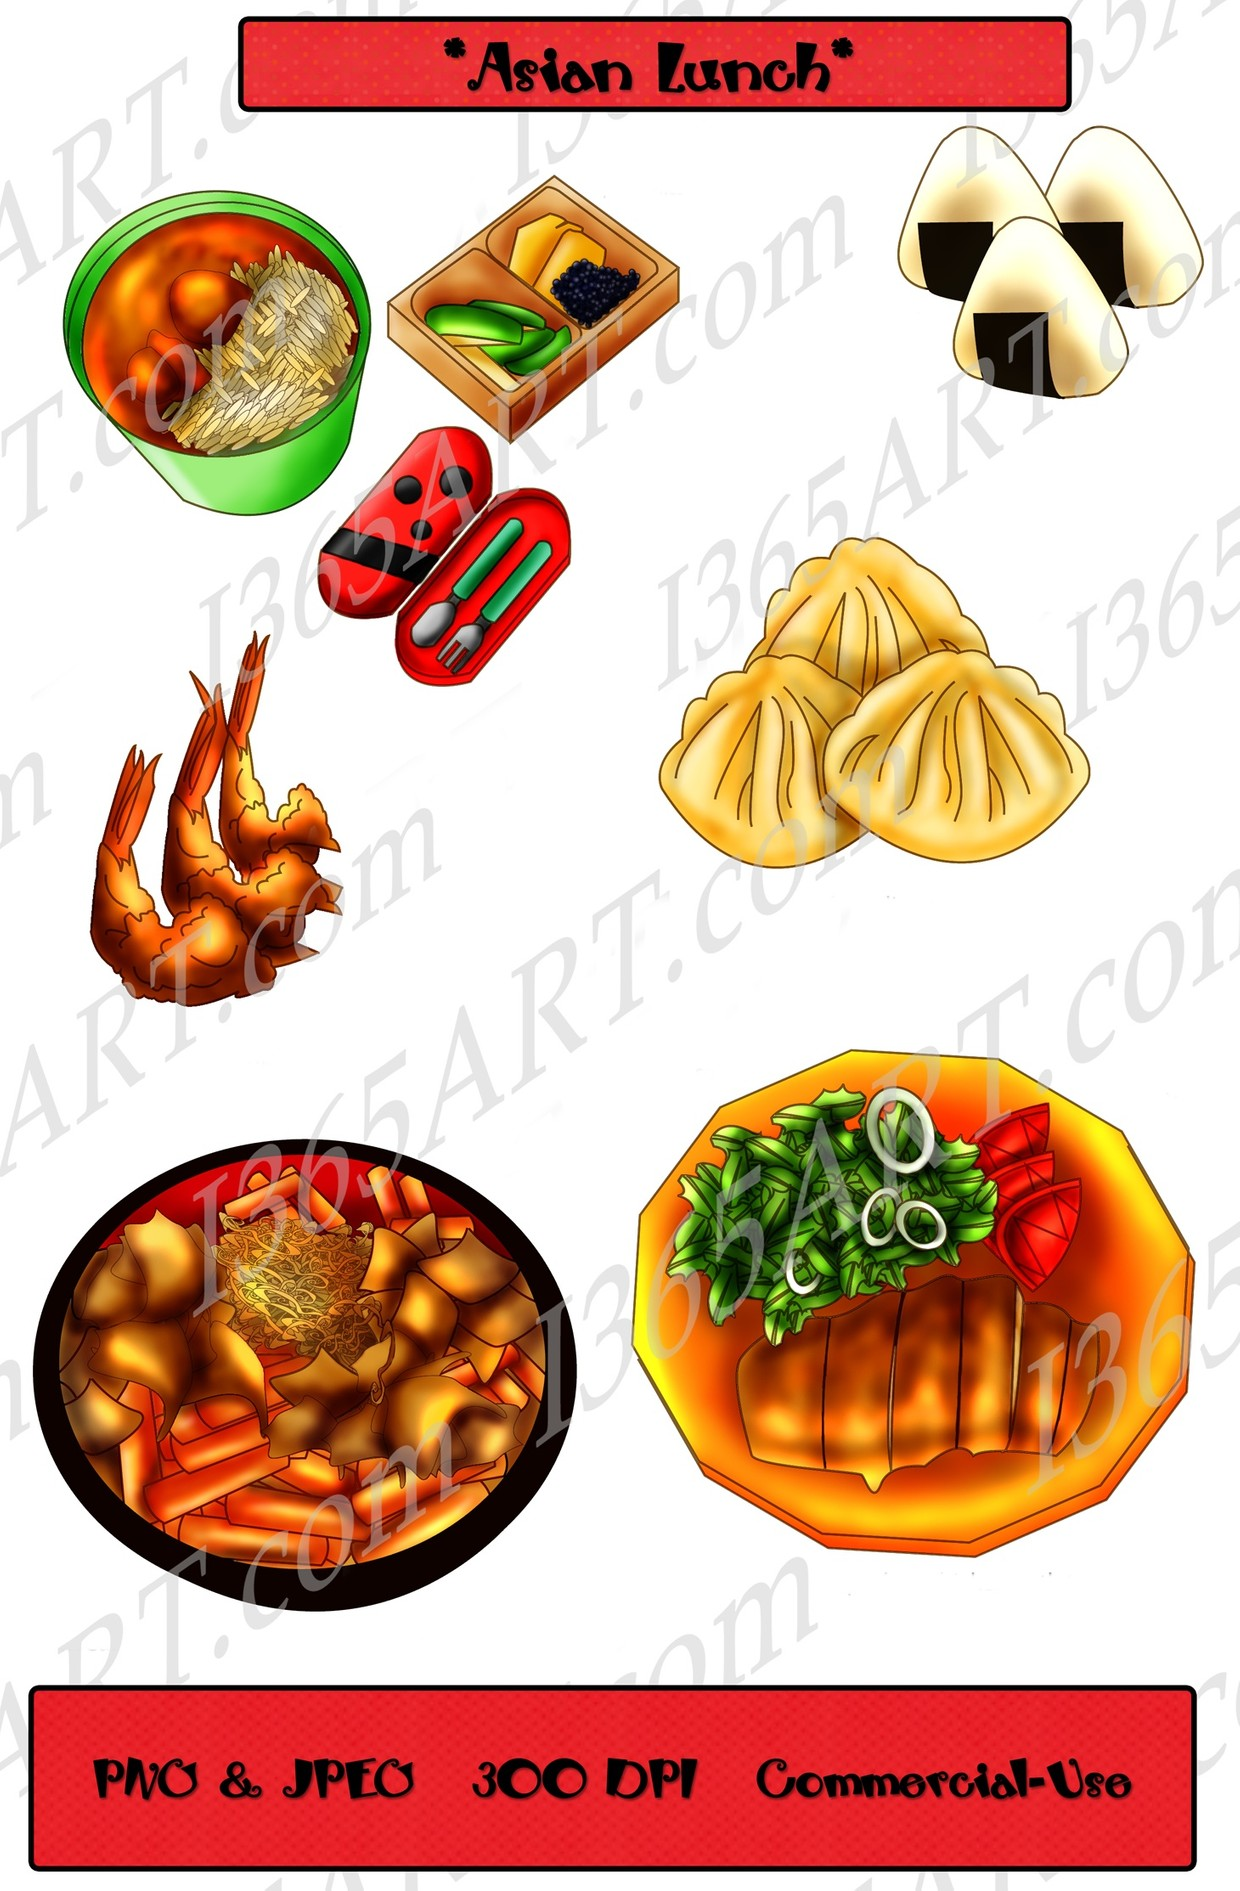 Asian lunch clipart, lunch clip art, food clipart, scrapbooking, lunch  graphics.